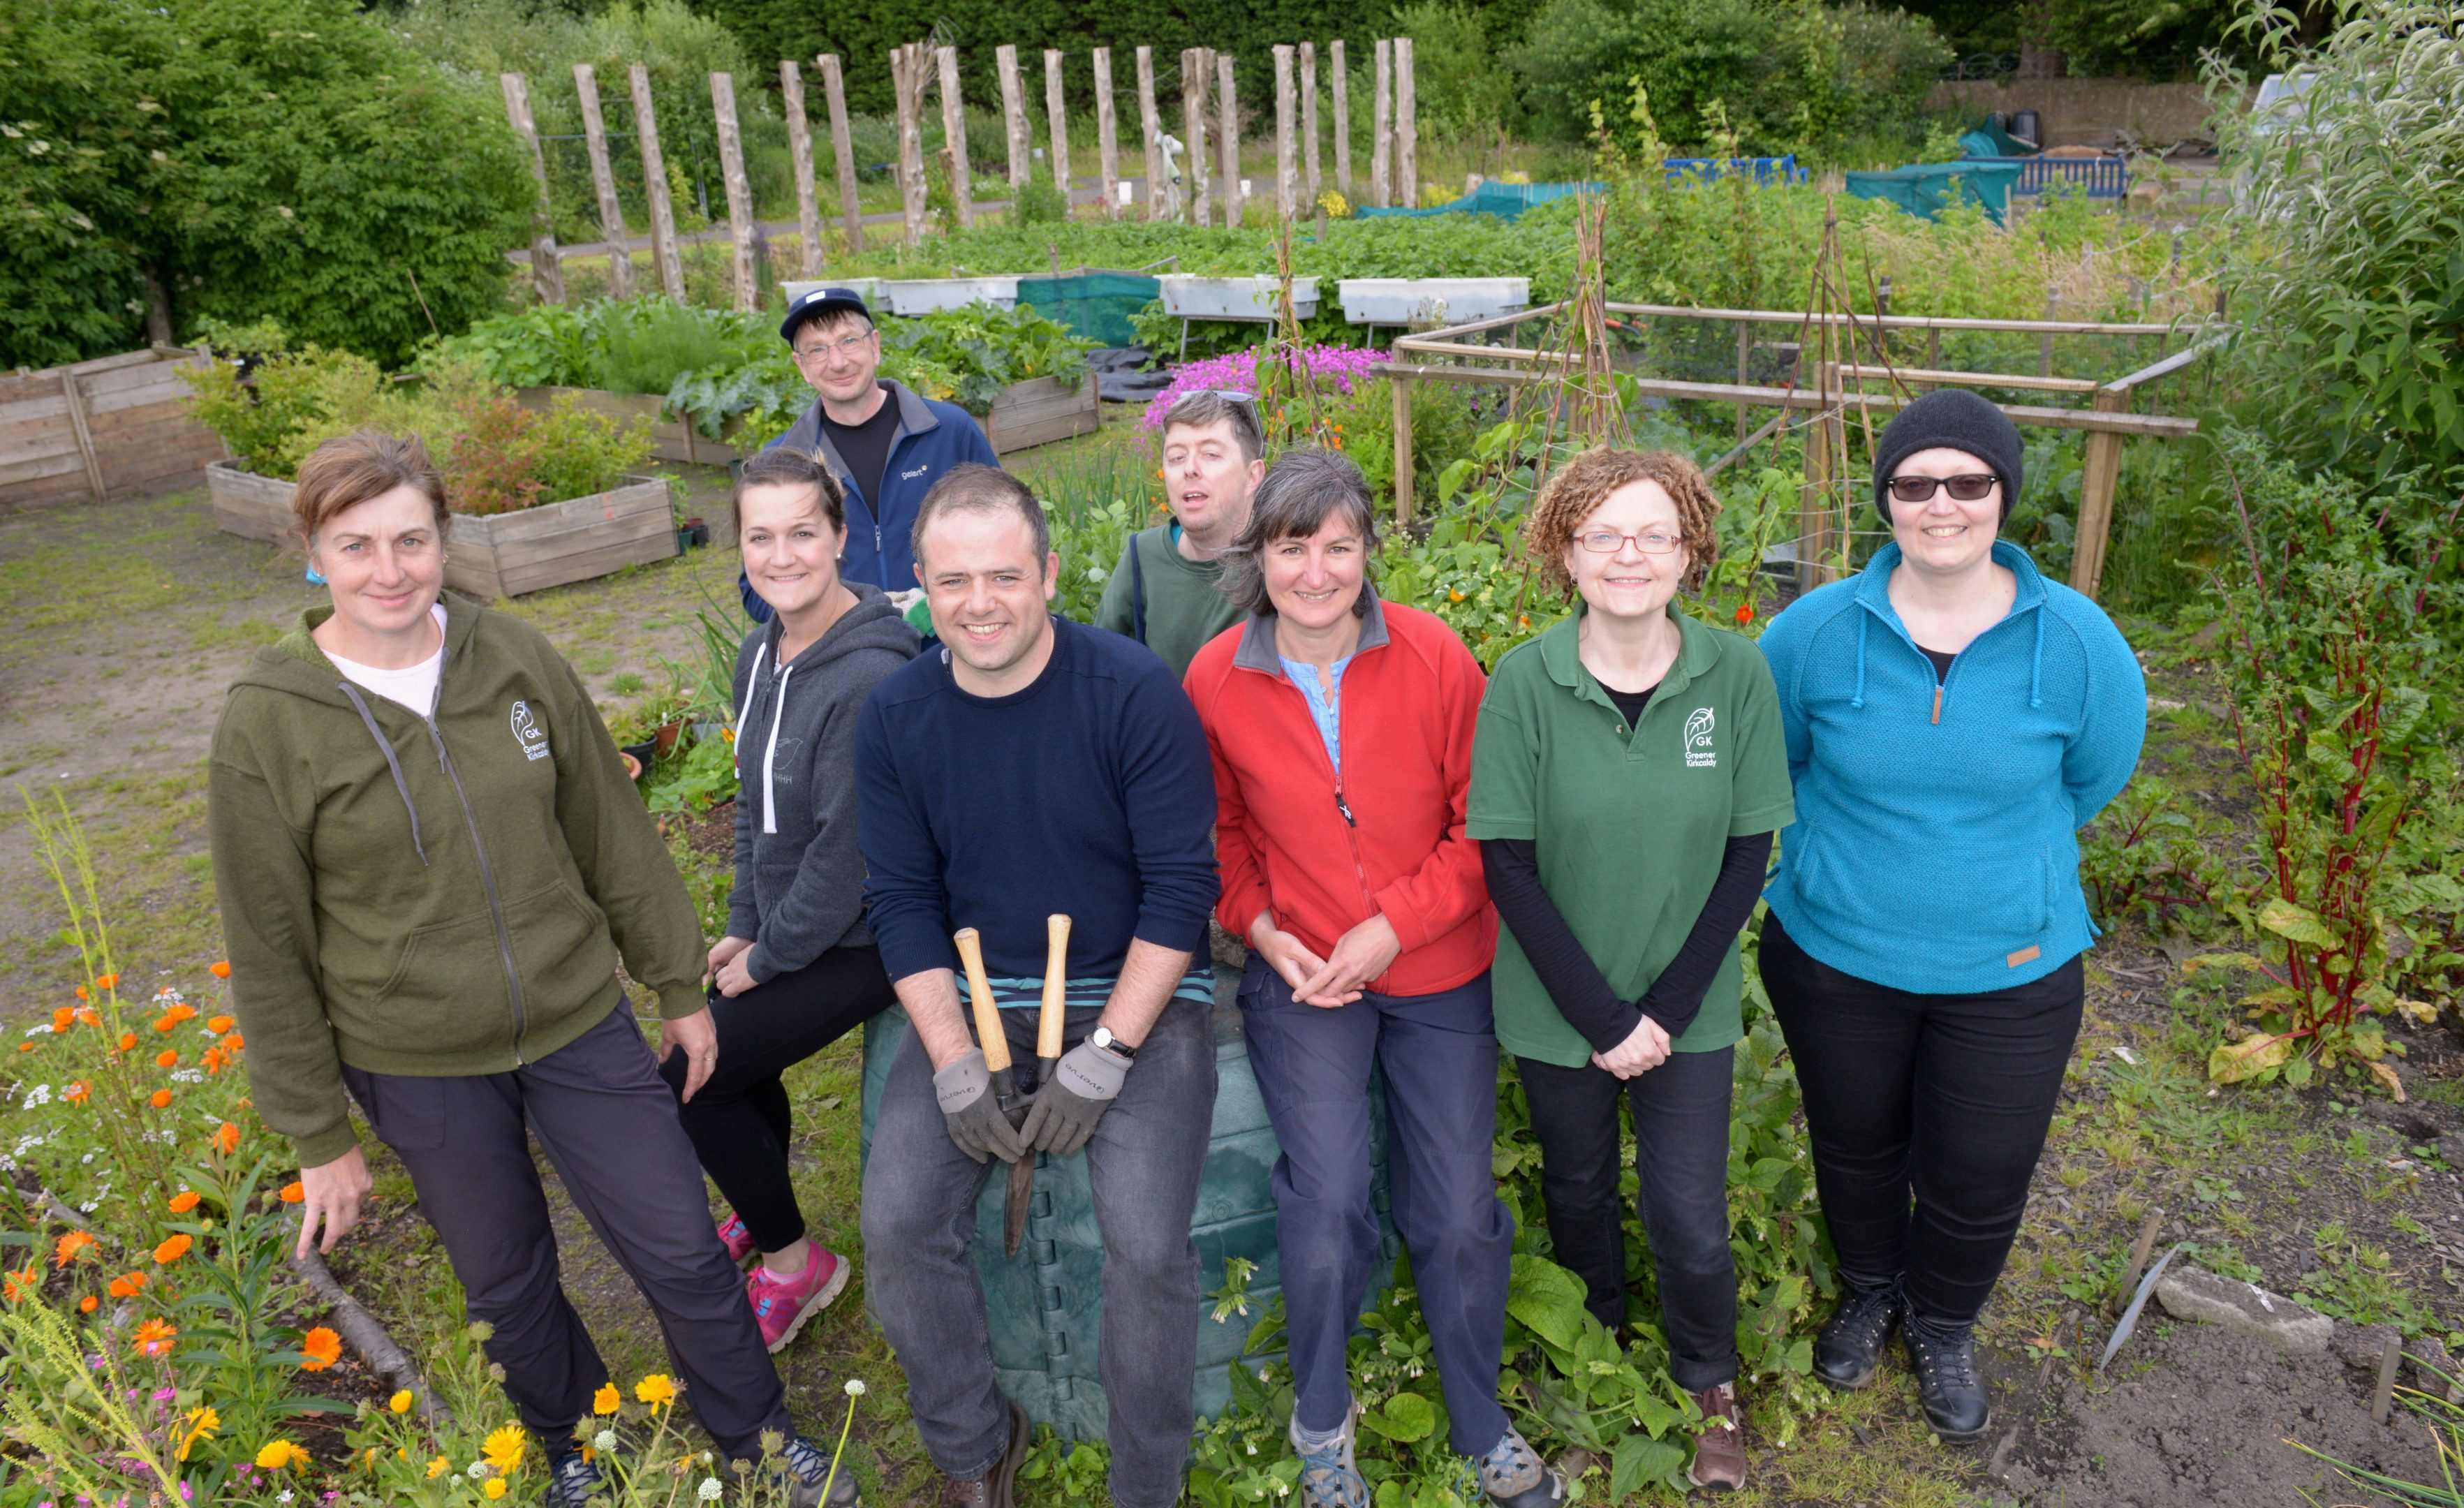 Some of the Greener Kirkcaldy gang in the Ravenscraig Walled Garden